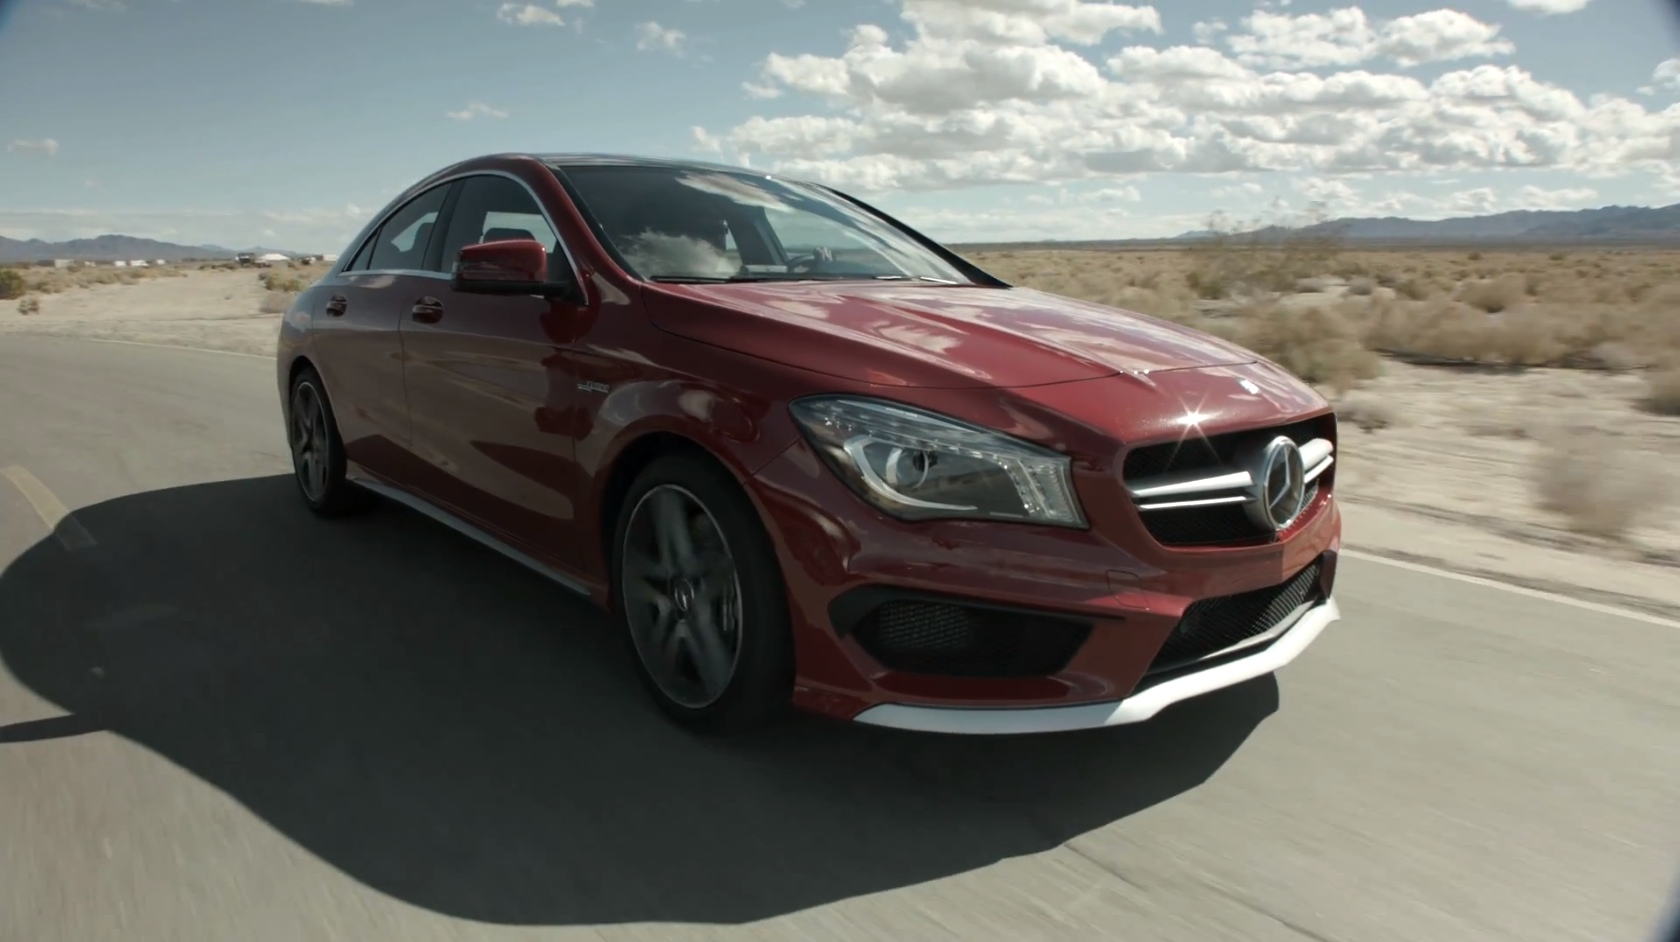 CLA 45 AMG Gets Lukewarm Review From Drive - Video